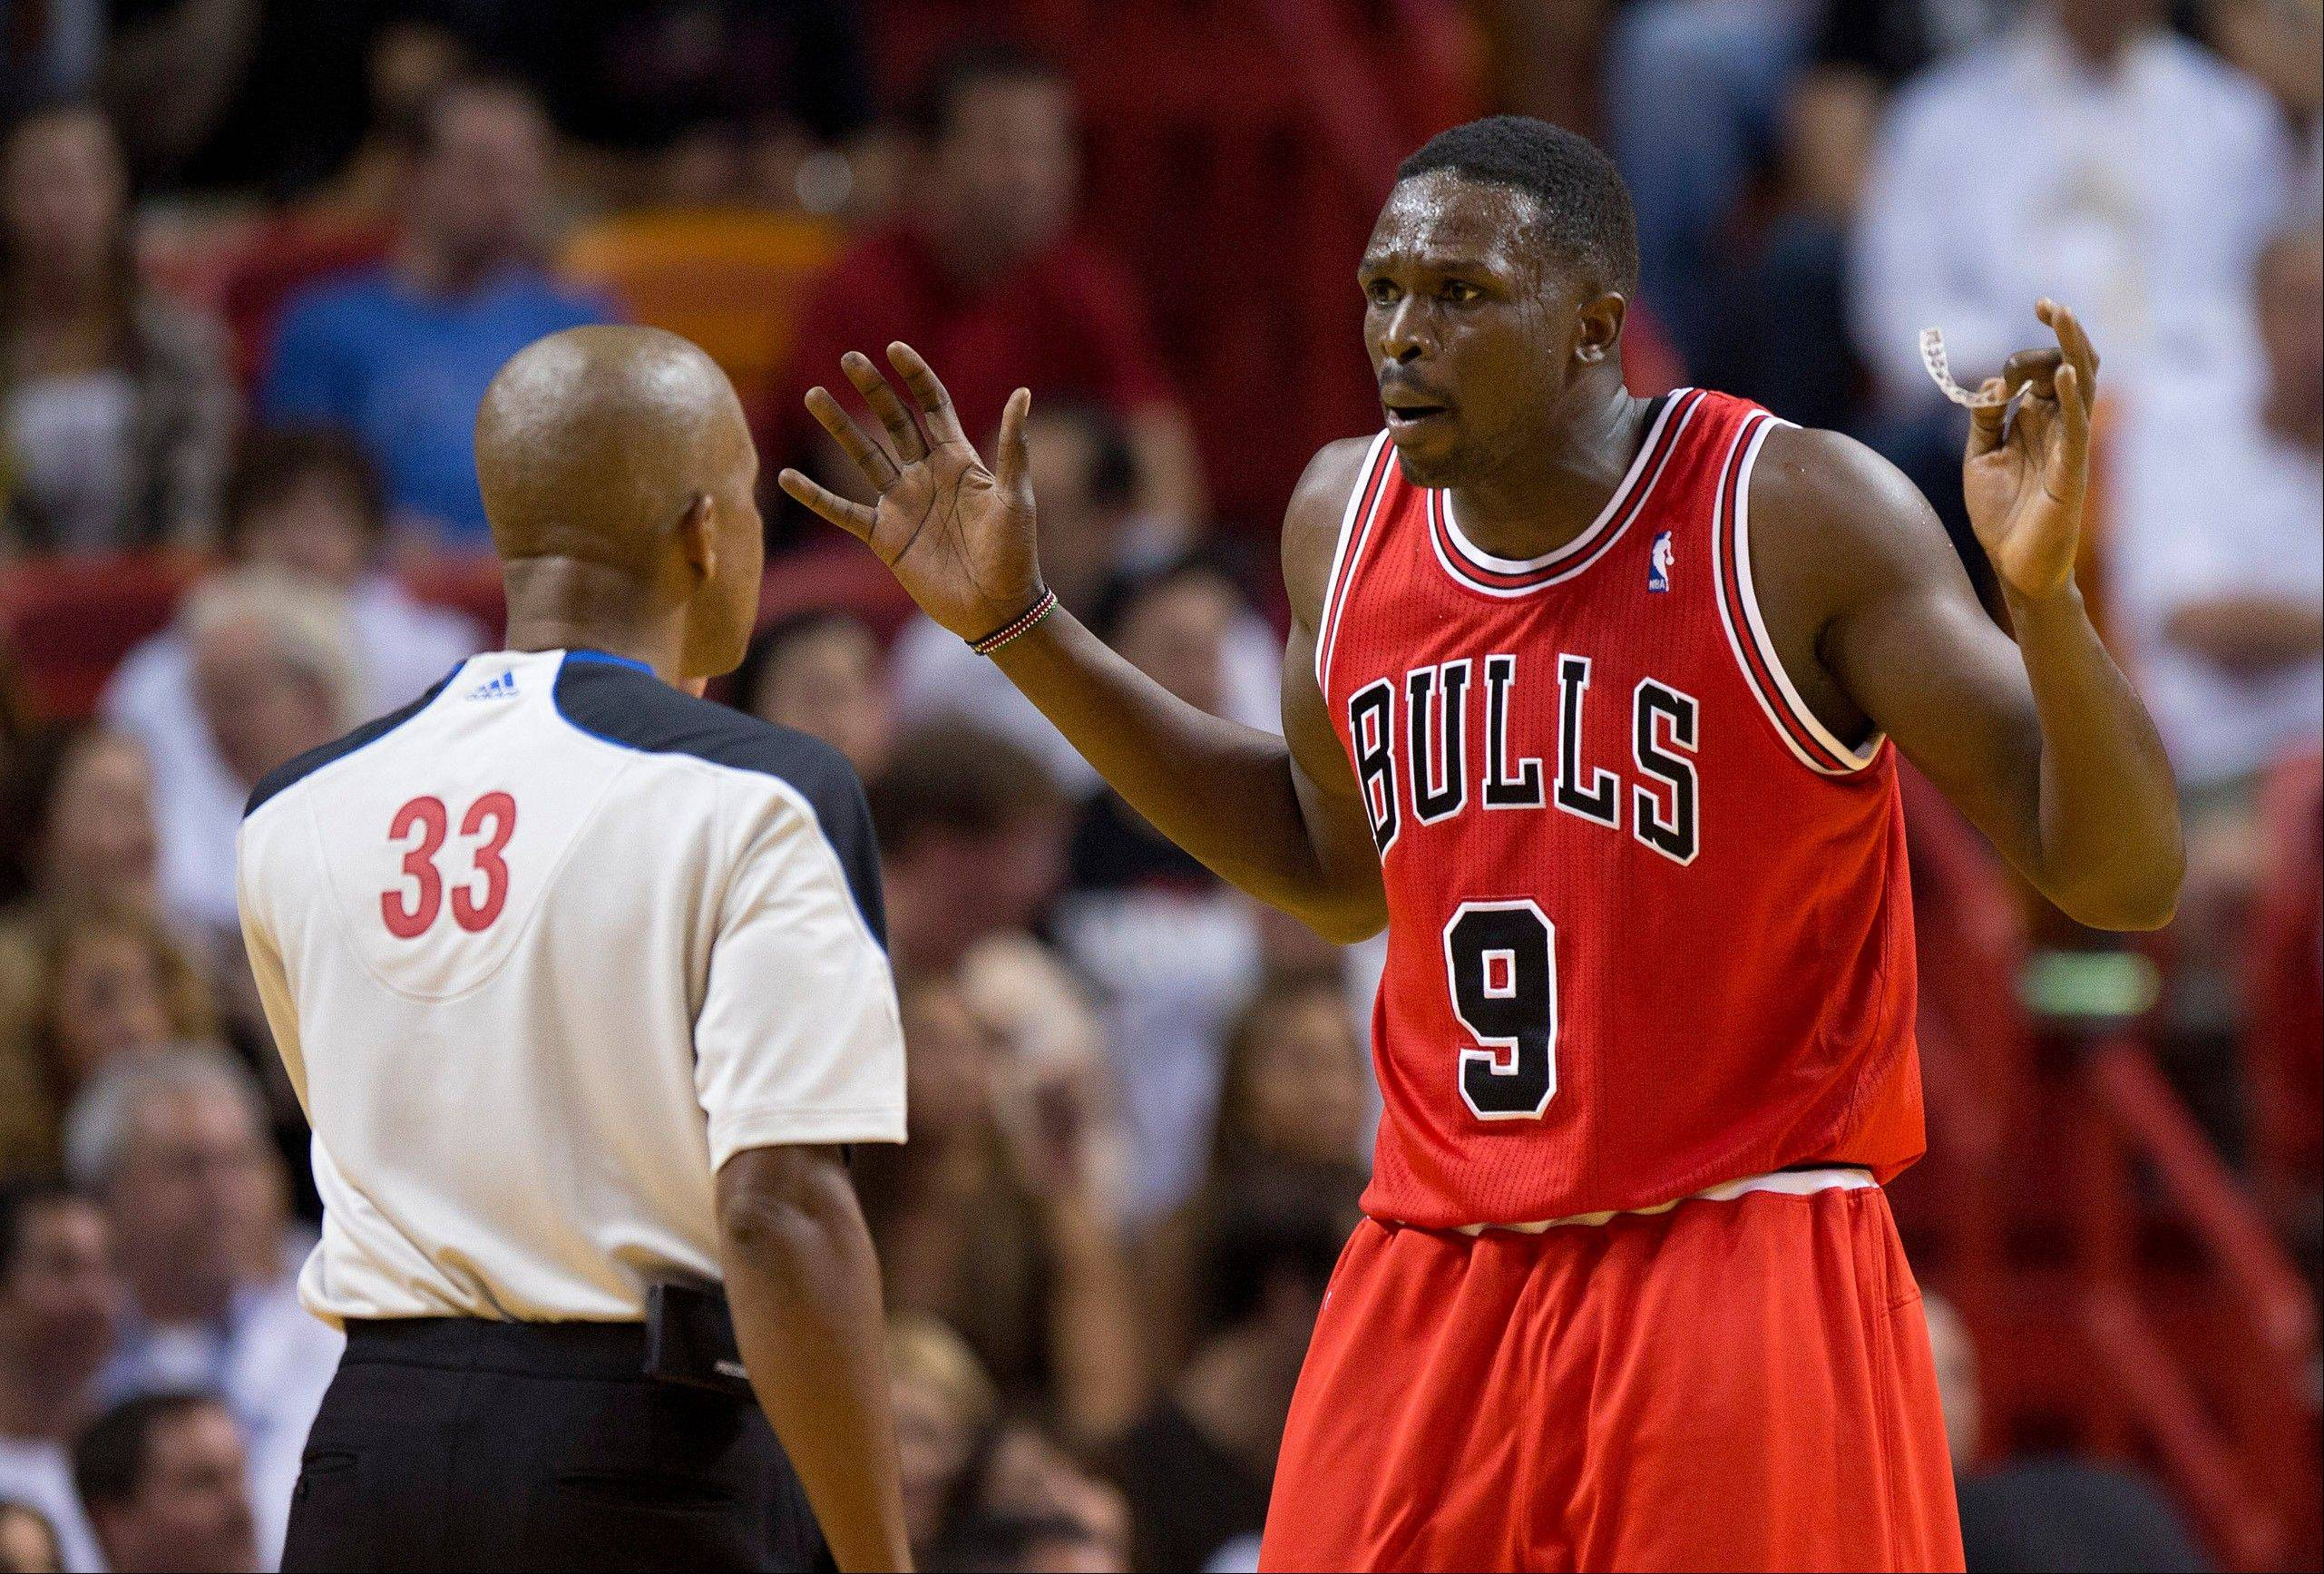 It was a rough night for Luol Deng and the Bulls as they dropped their season opener to the Heat in Miami.